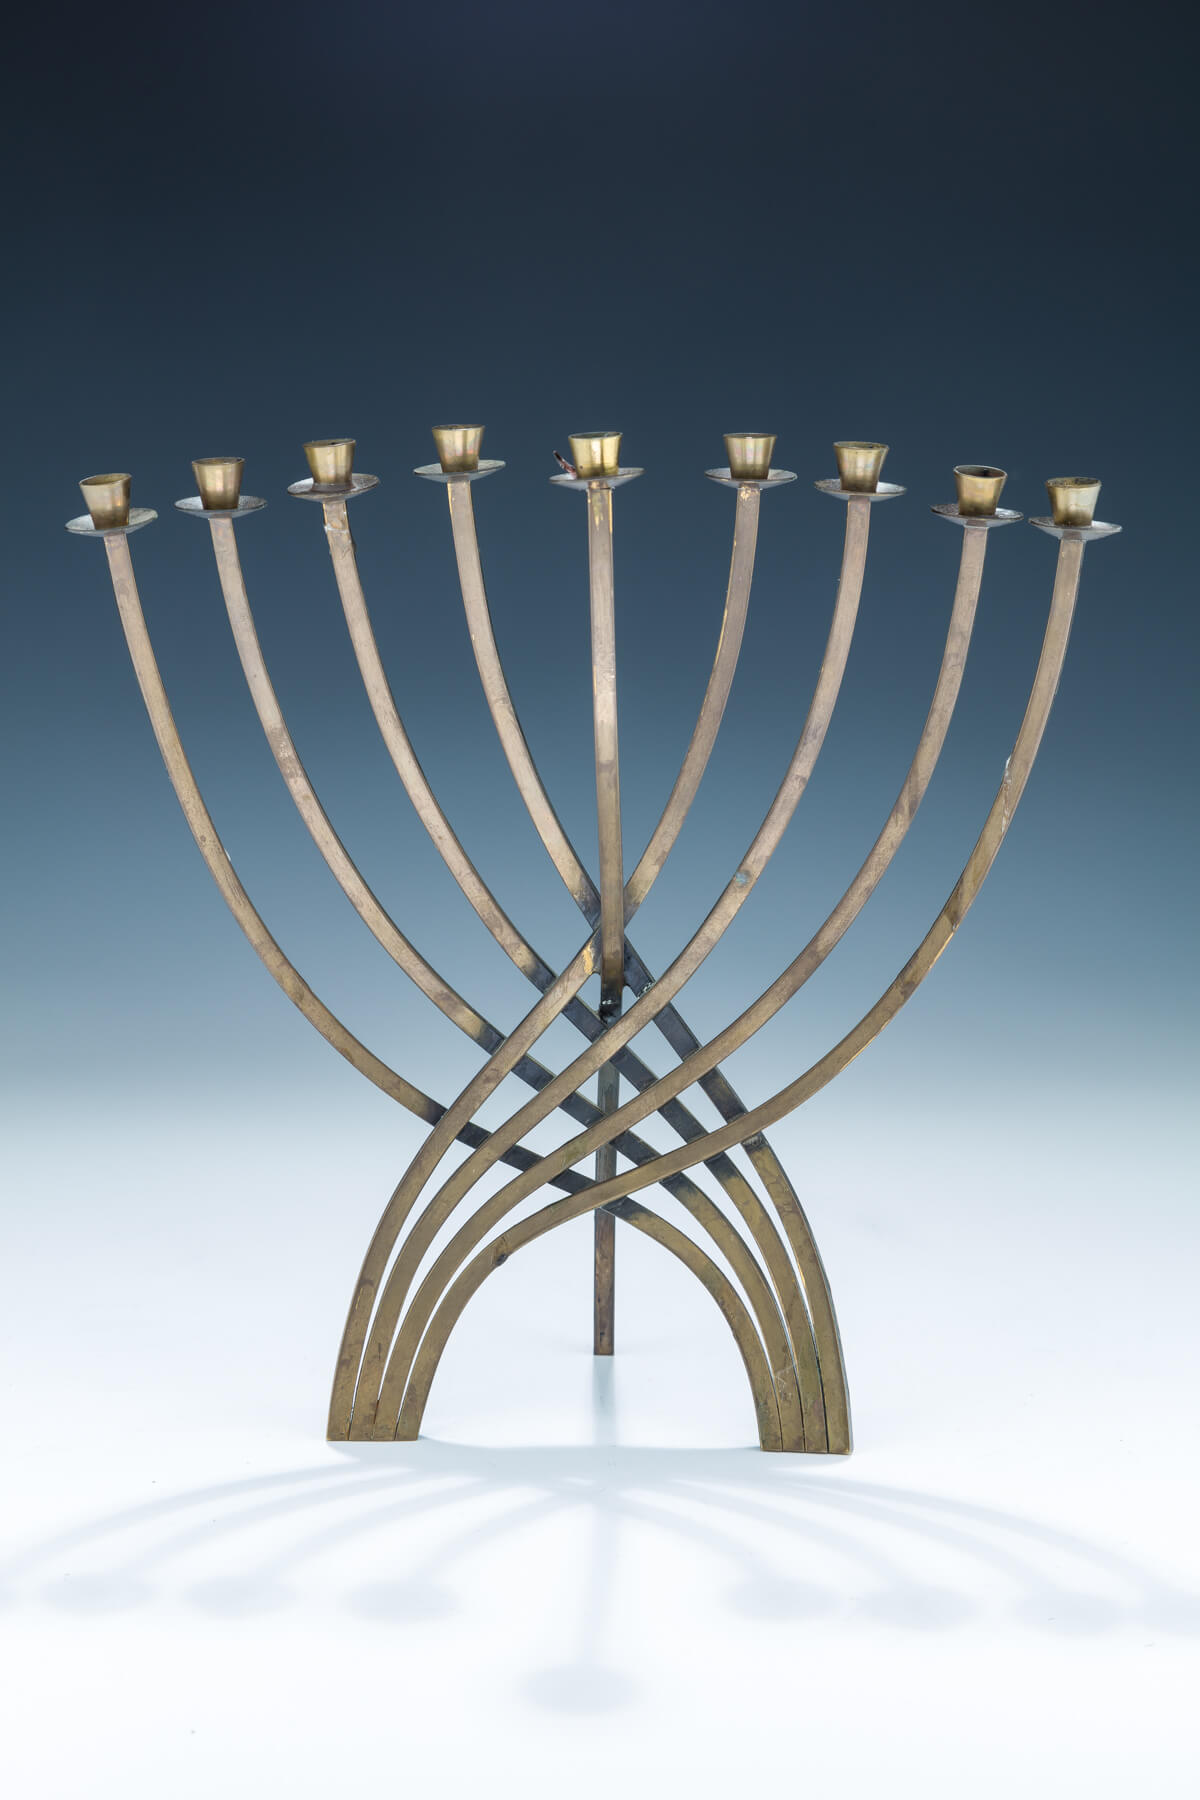 139. A Brass Chanukah Menorah by Ludwig Wolpert